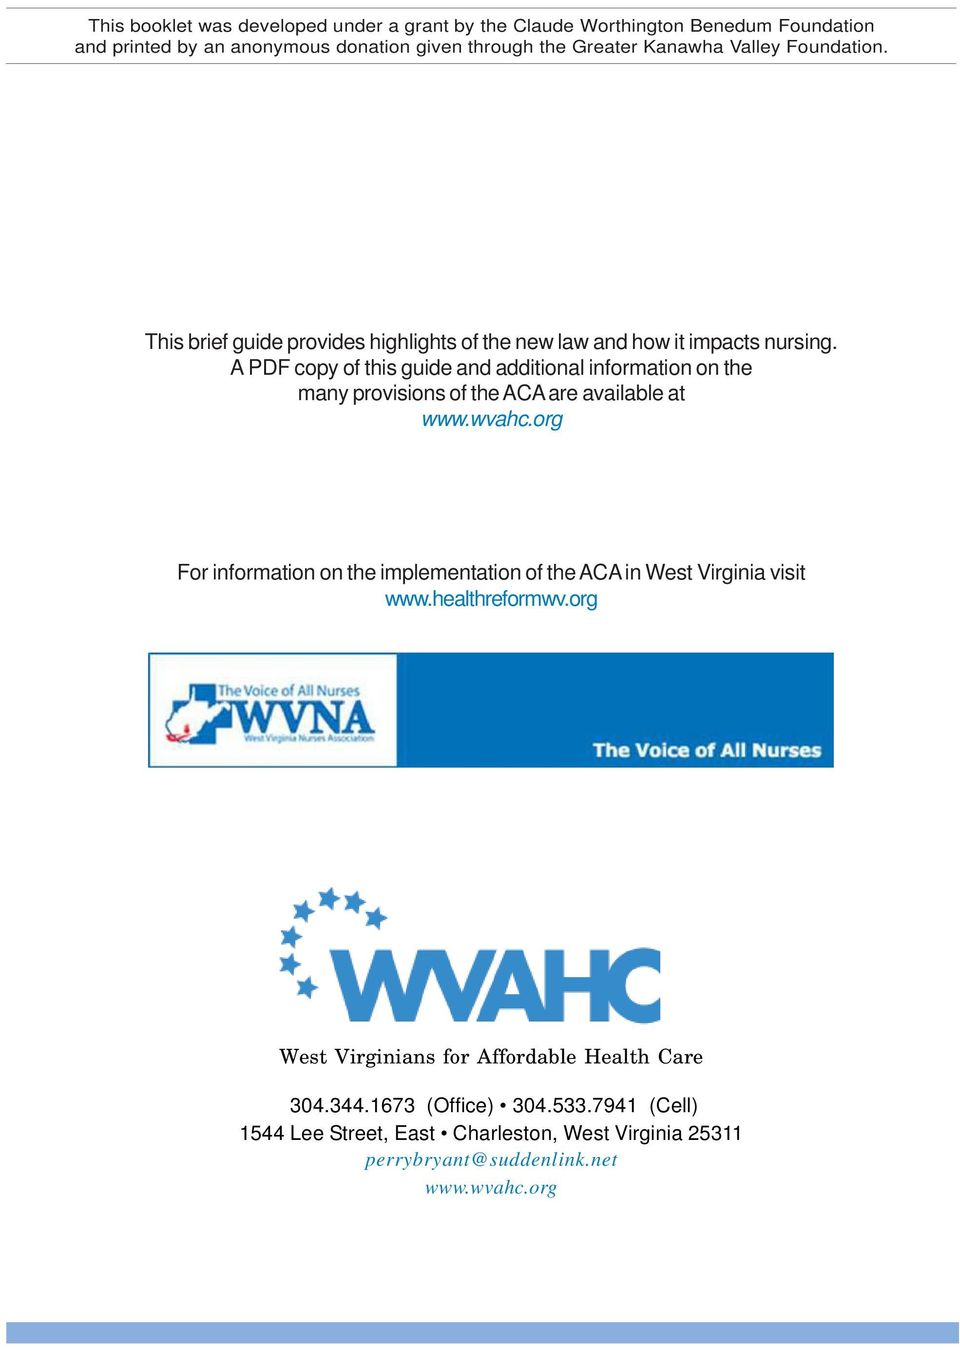 A PDF copy of this guide and additional information on the many provisions of the ACA are available at www.wvahc.